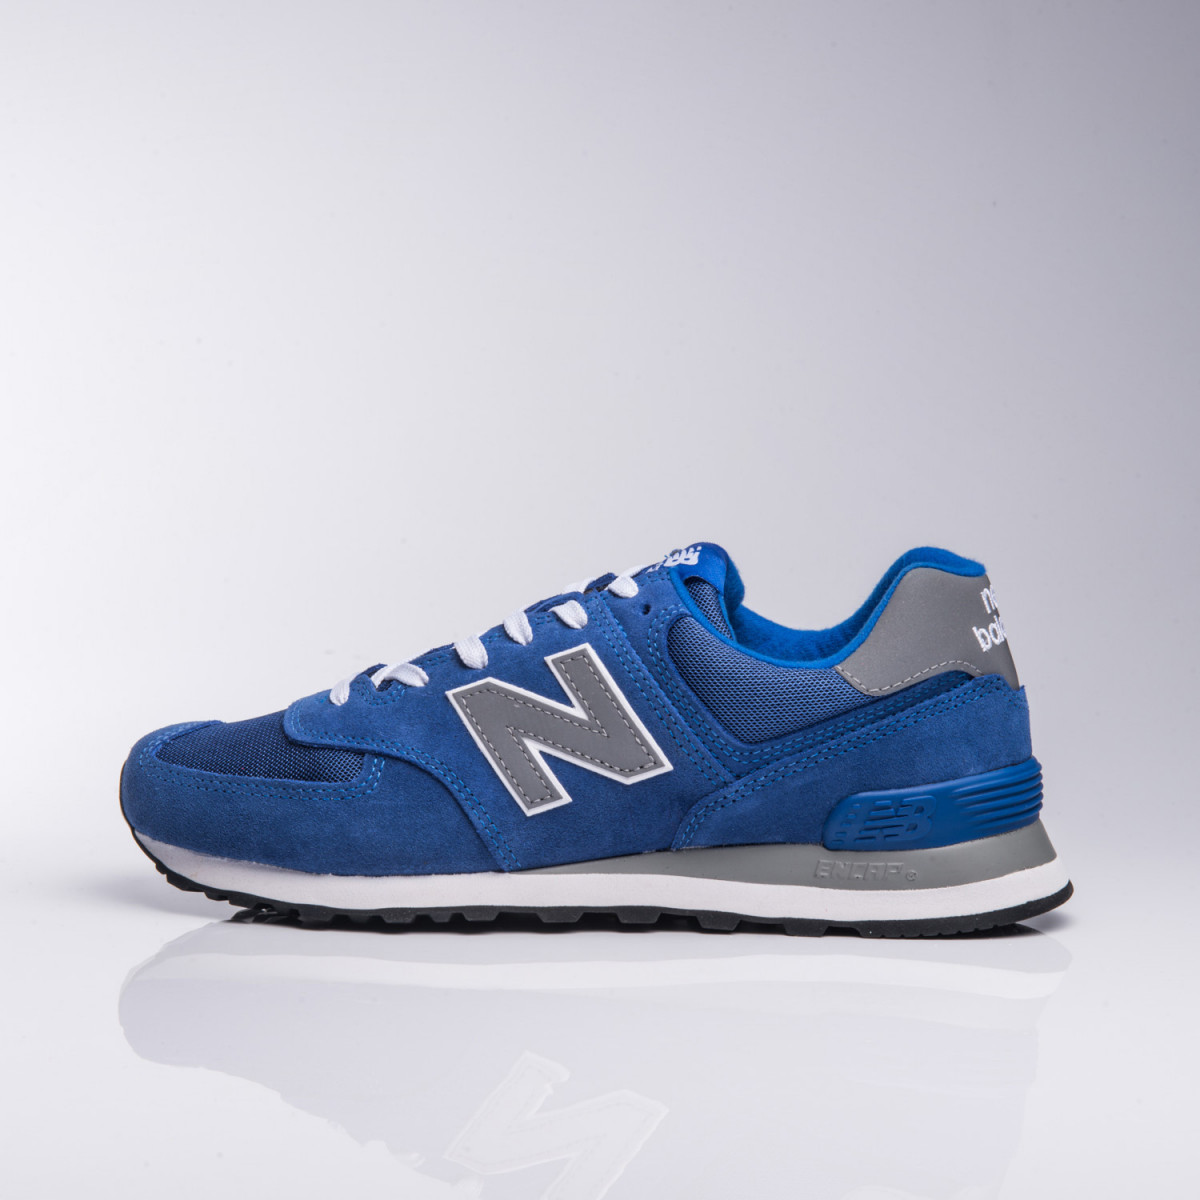 ZAPATILLAS NEW BALANCE M574BWGG